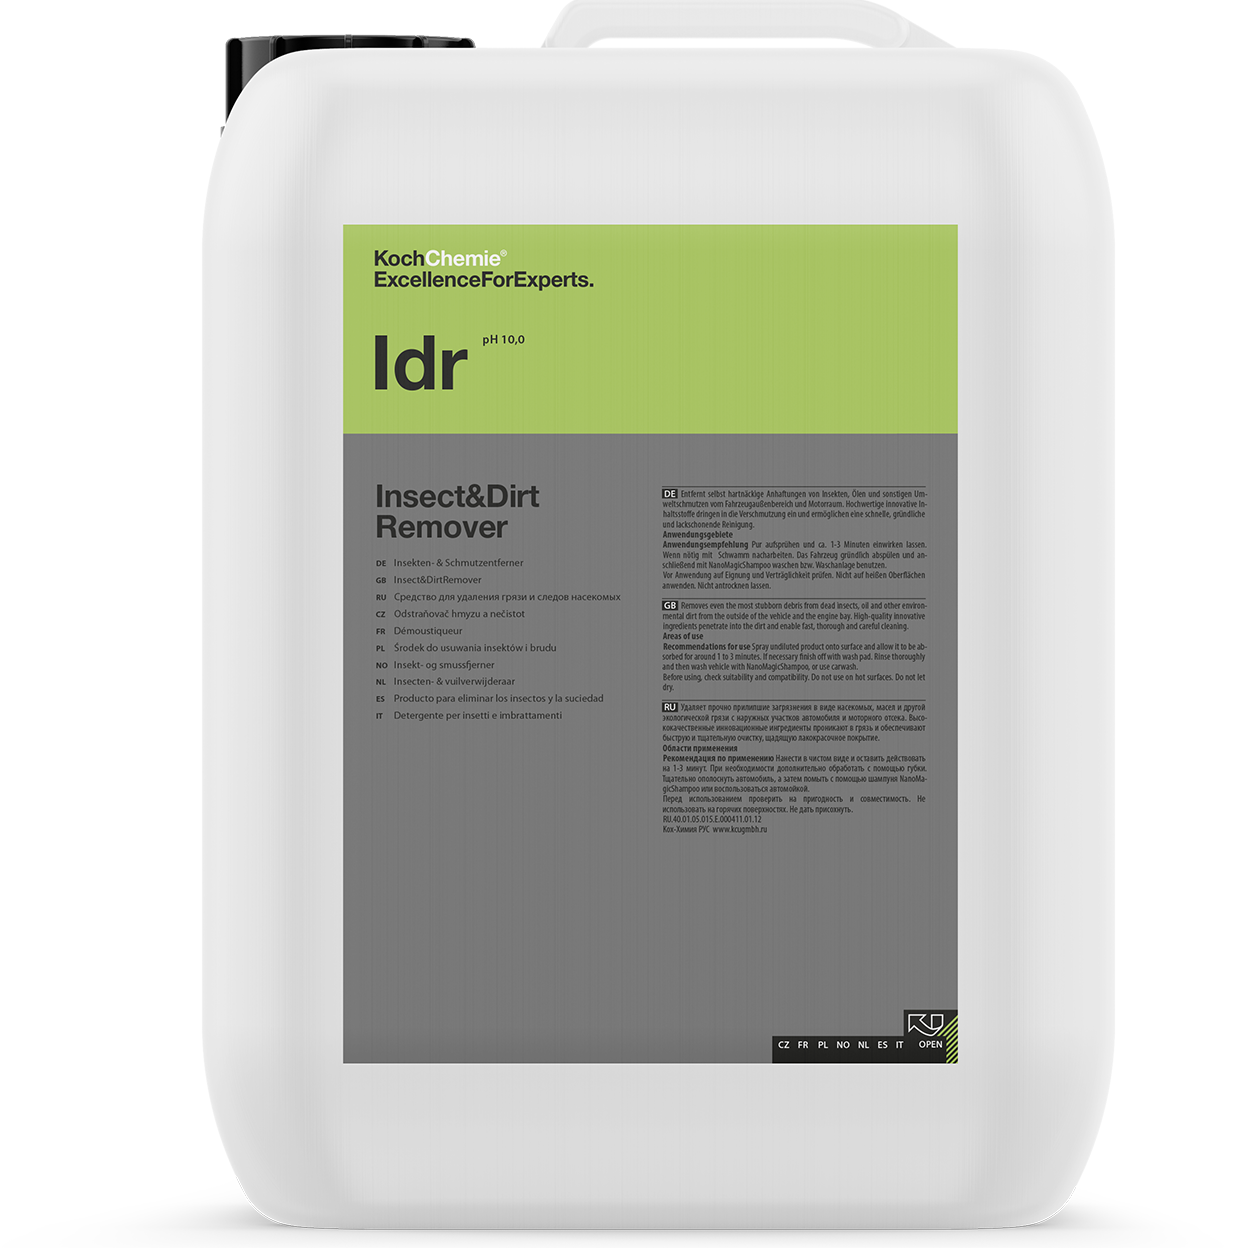 Insect&Dirt Remover